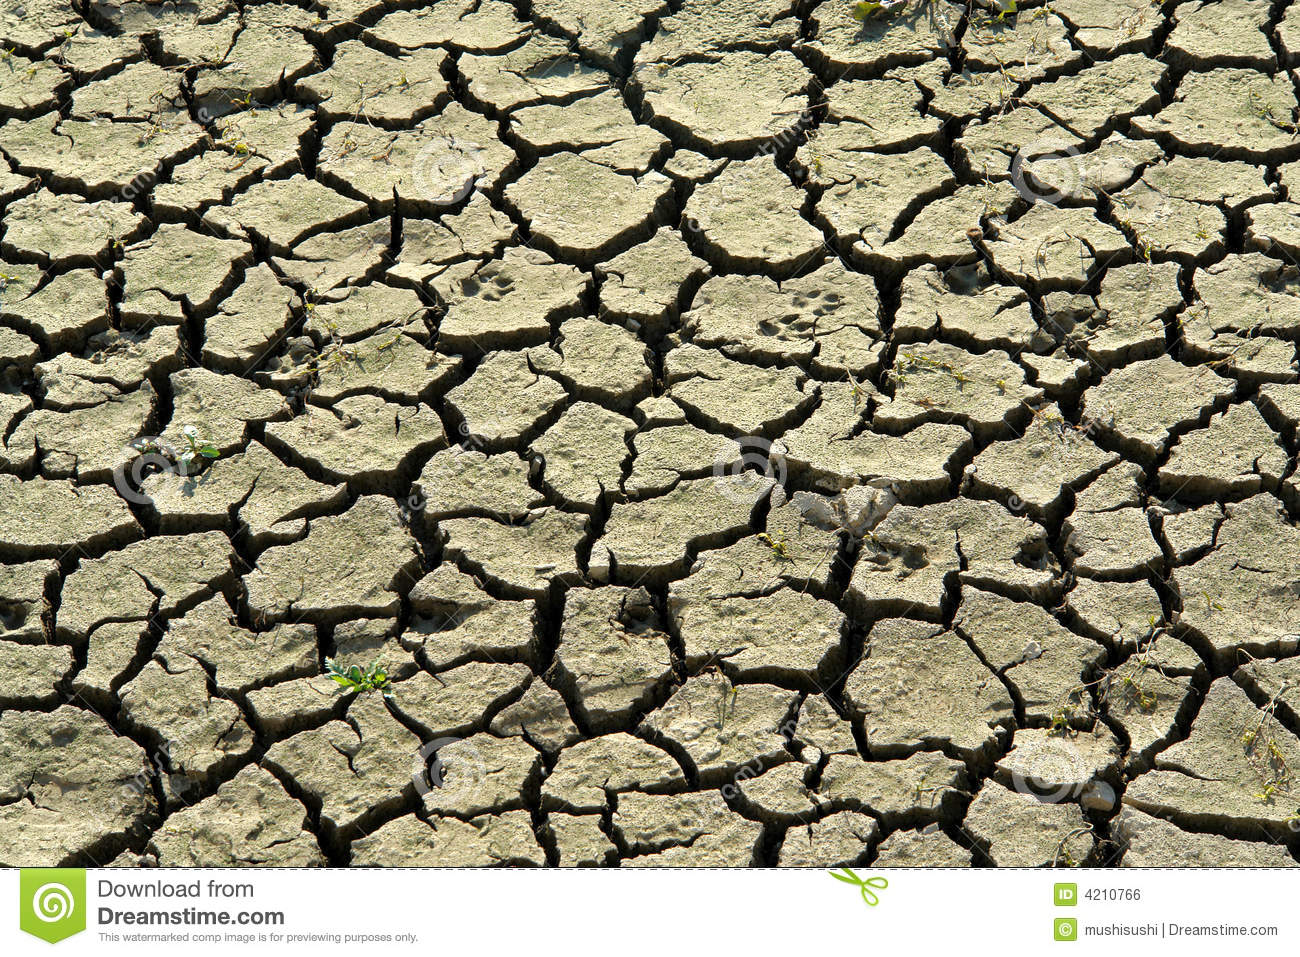 climate change images free climate change royalty free stock image image 4210766 1066